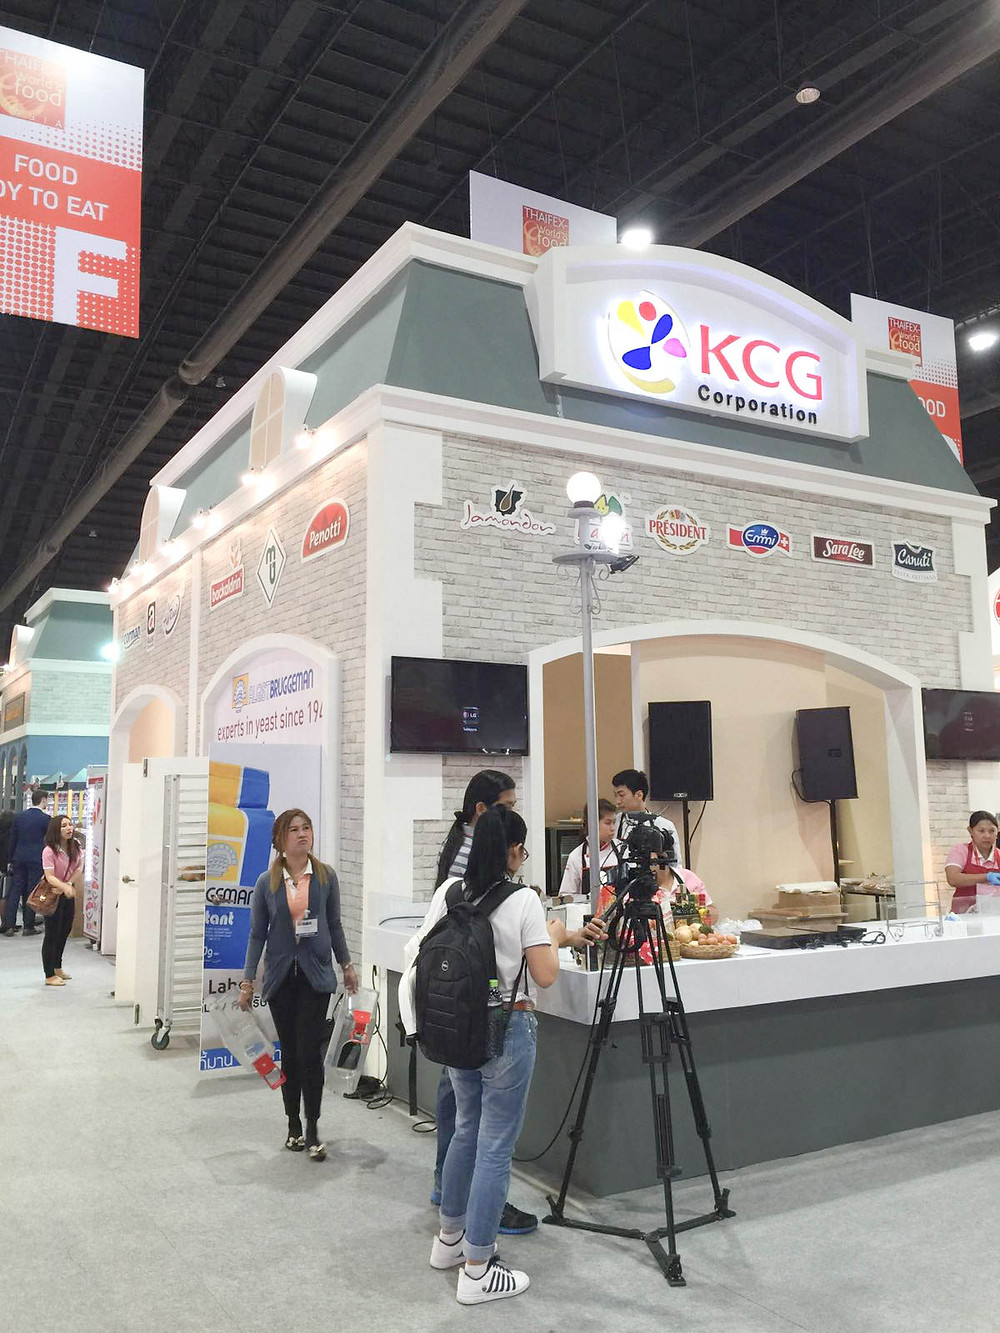 Booth of KCG Corporation